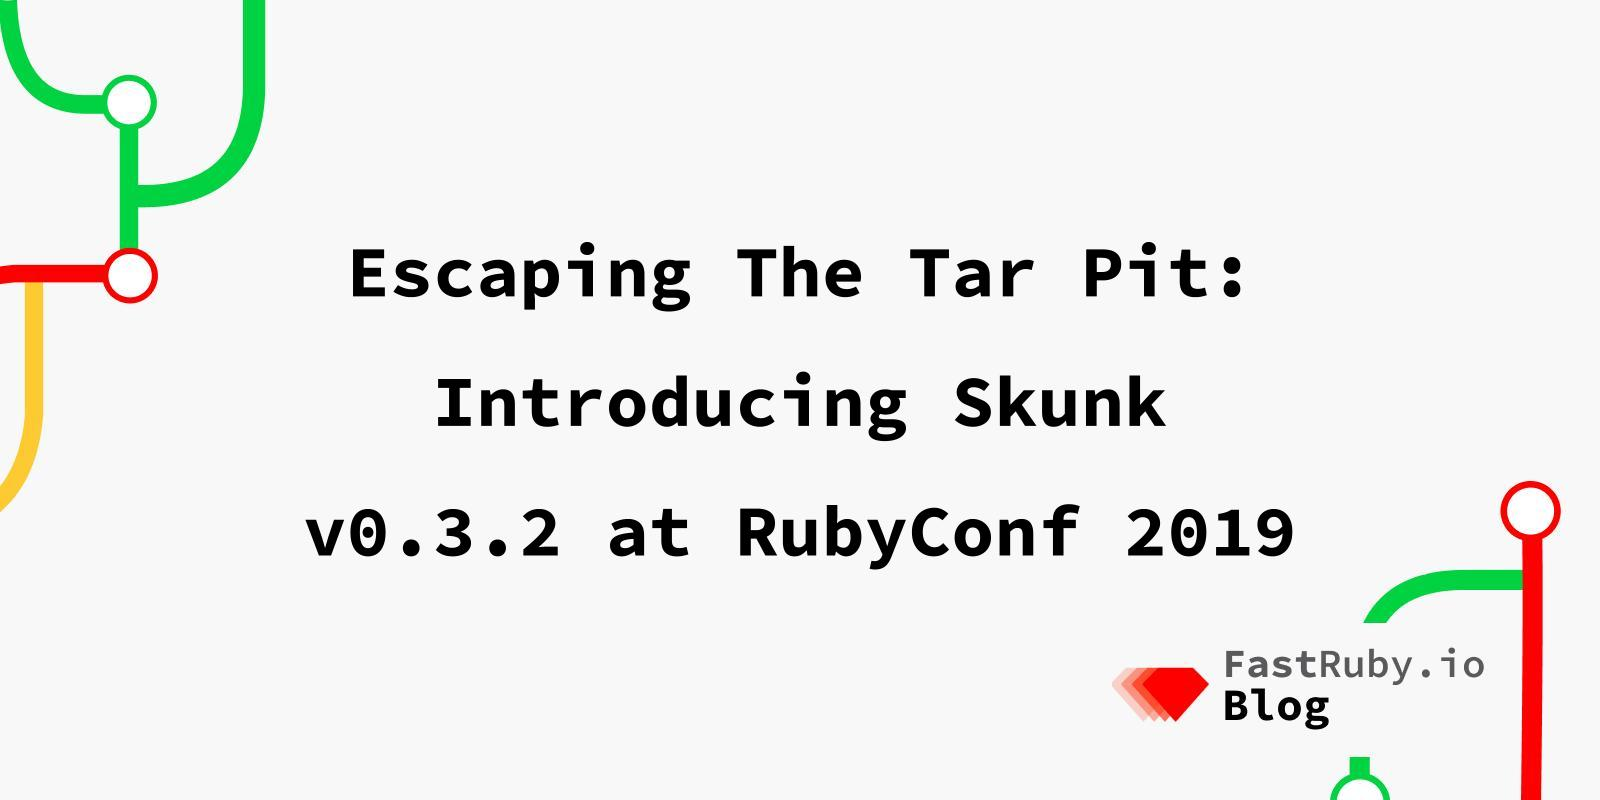 Escaping The Tar Pit: Introducing Skunk v0.3.2 at RubyConf 2019